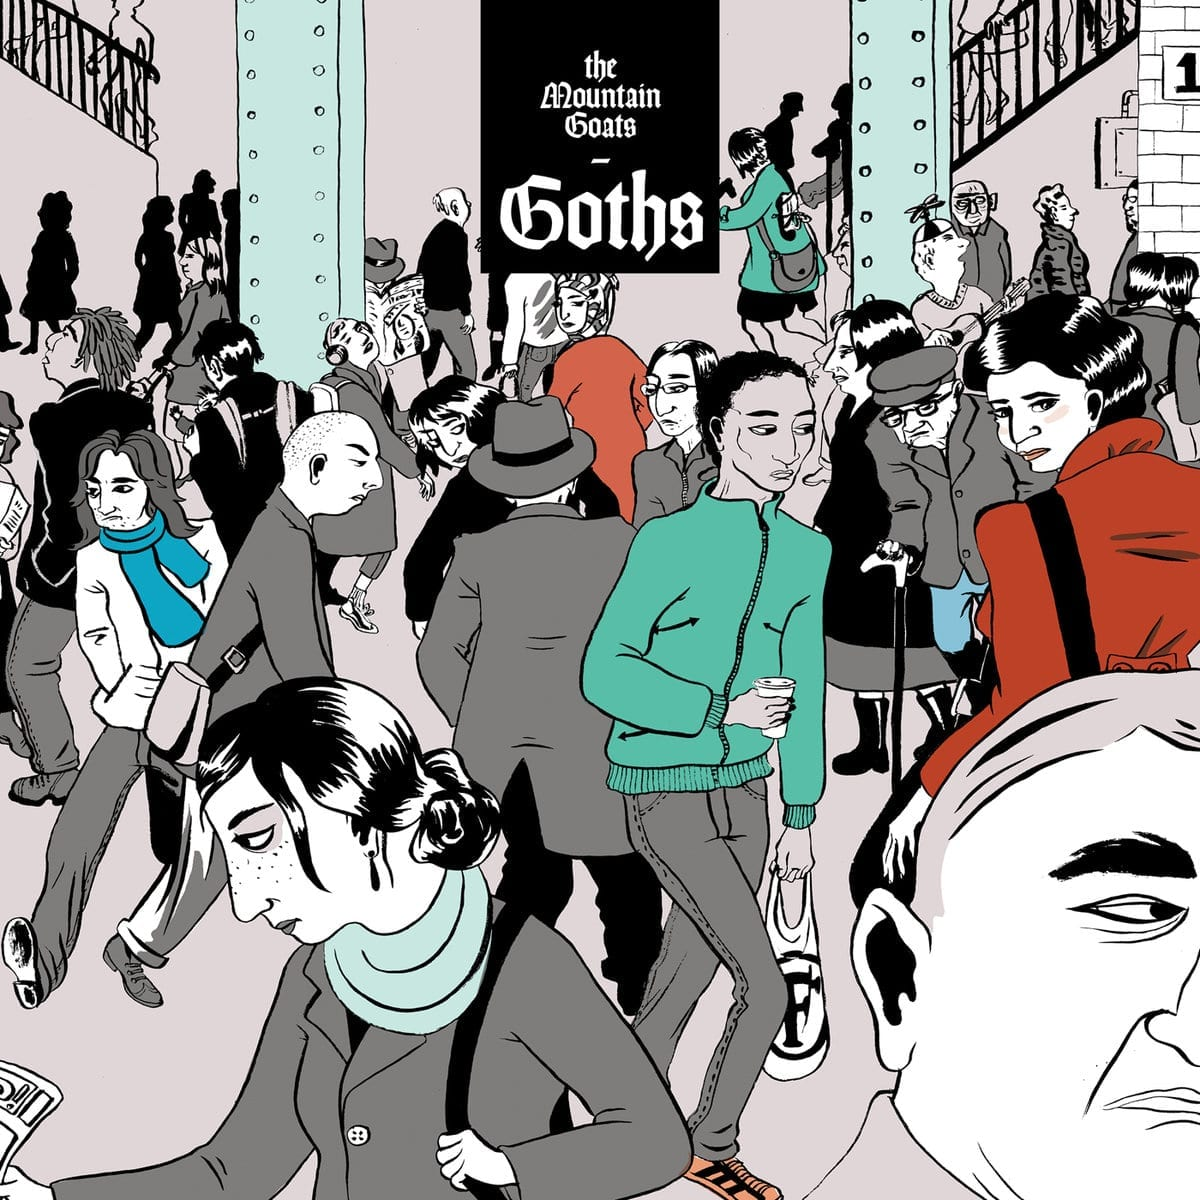 4. The Mountain Goats - Goths